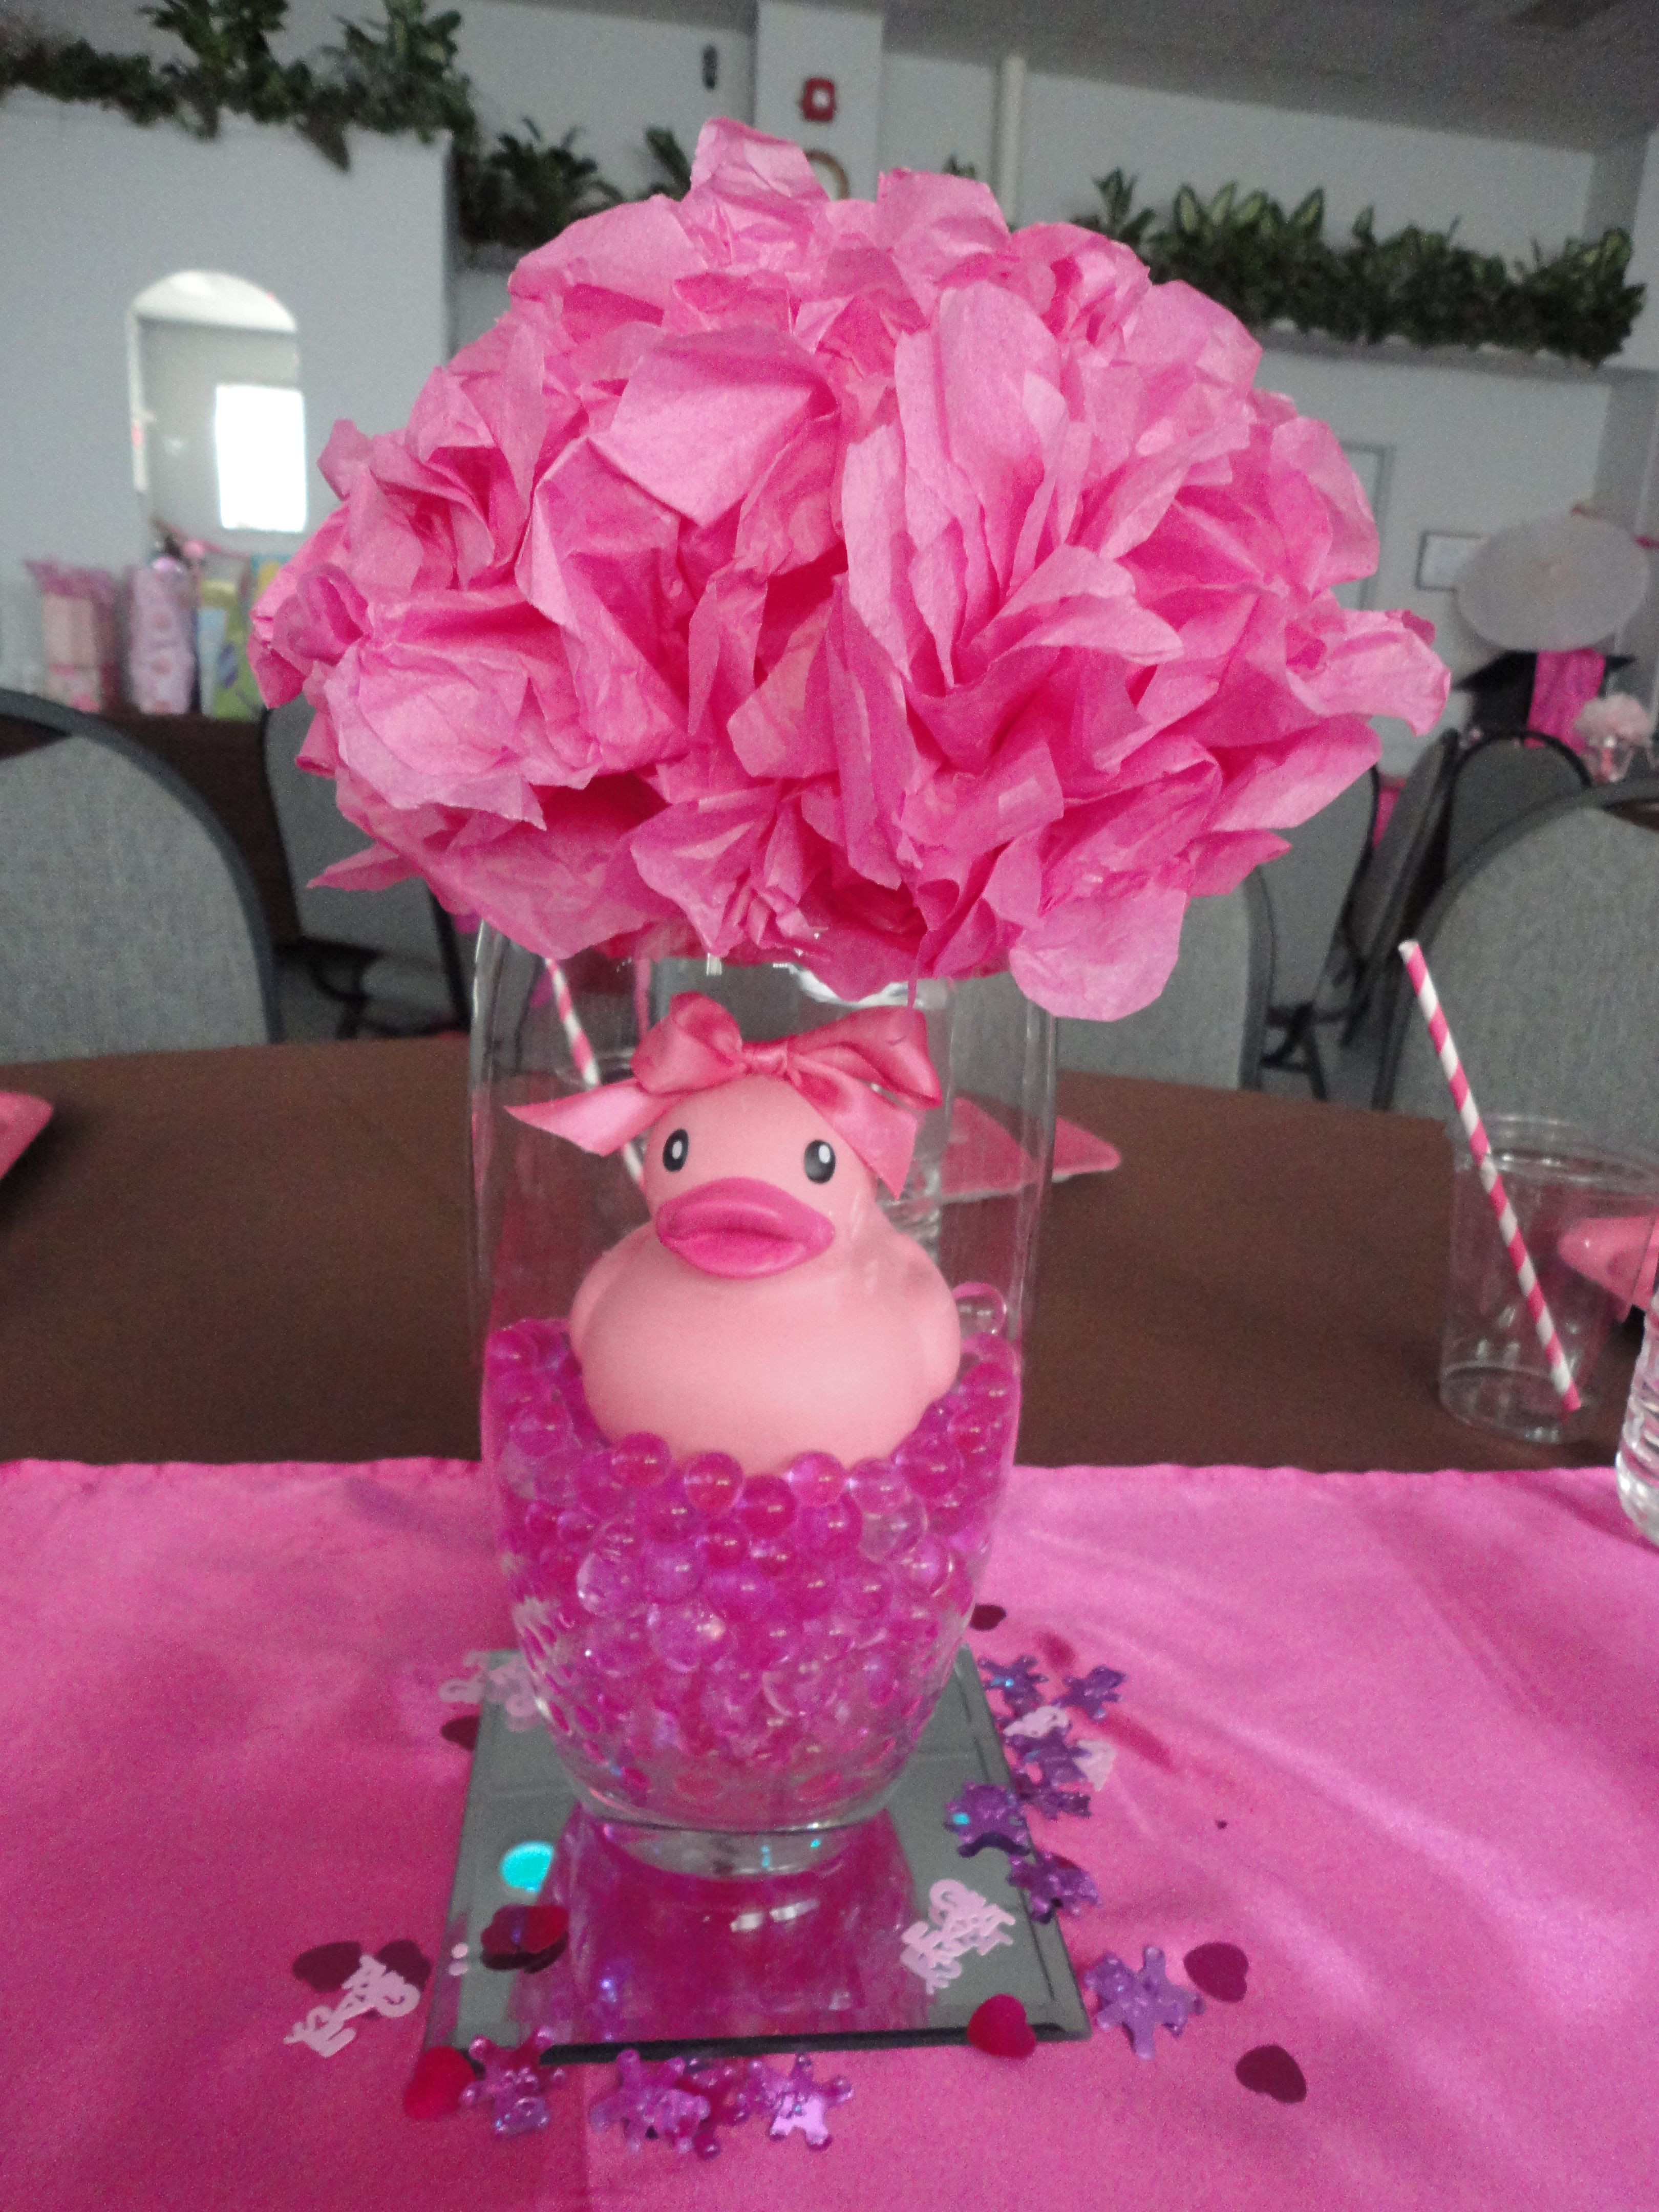 walmart glass flower vases of water gems ordered from ebay vases and mirrors from dollar store intended for water gems ordered from ebay vases and mirrors from dollar store and ducks found at